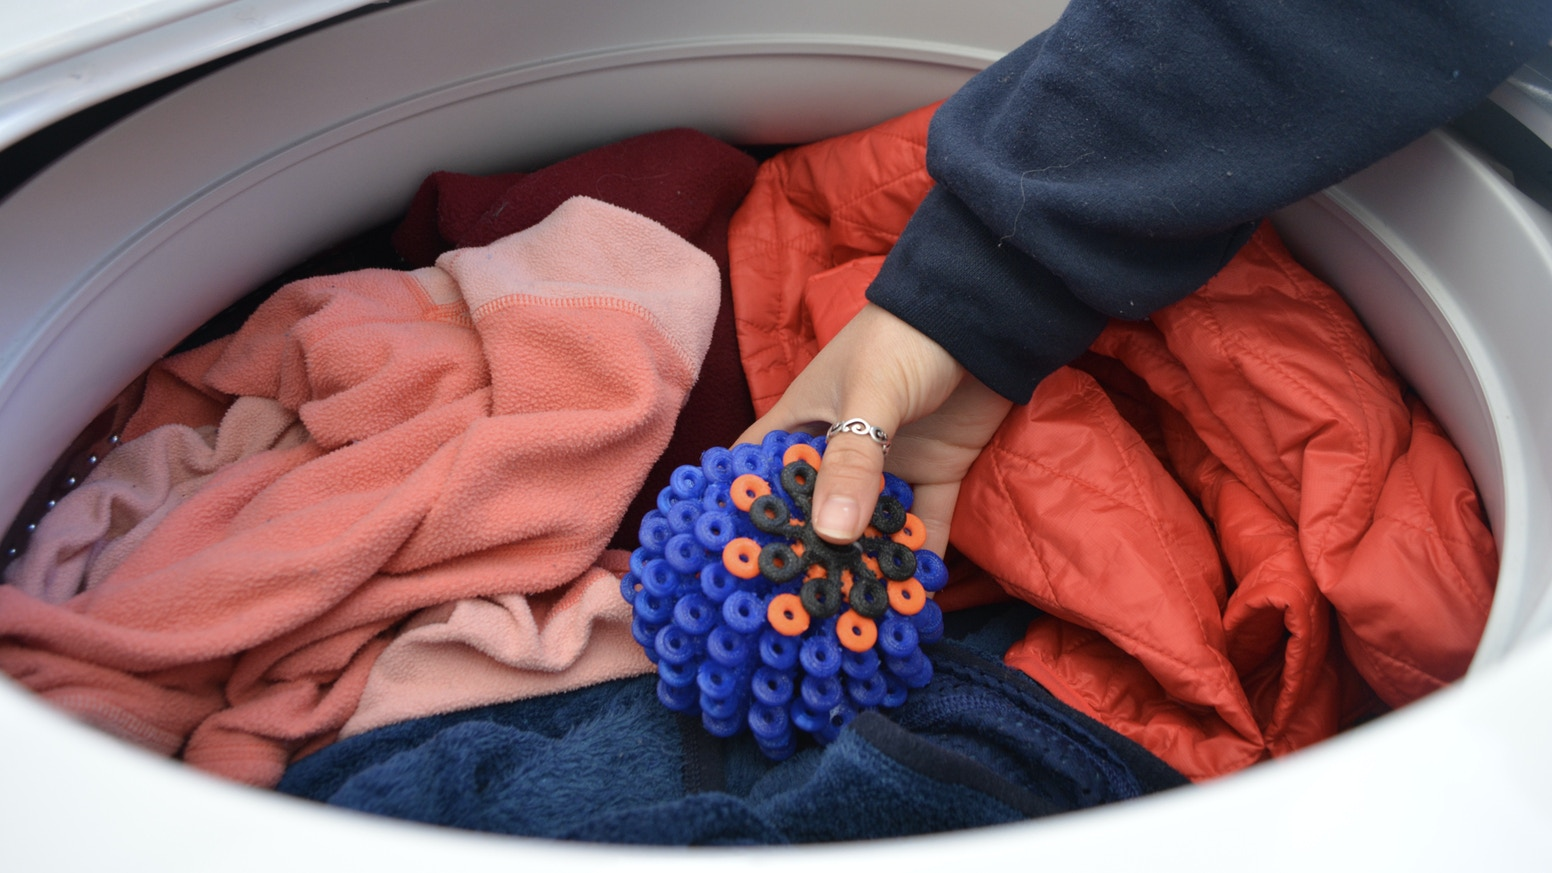 Protect the ocean environment with this easy-to-use laundry ball that catches microfibers shedding off our clothes in the washer.